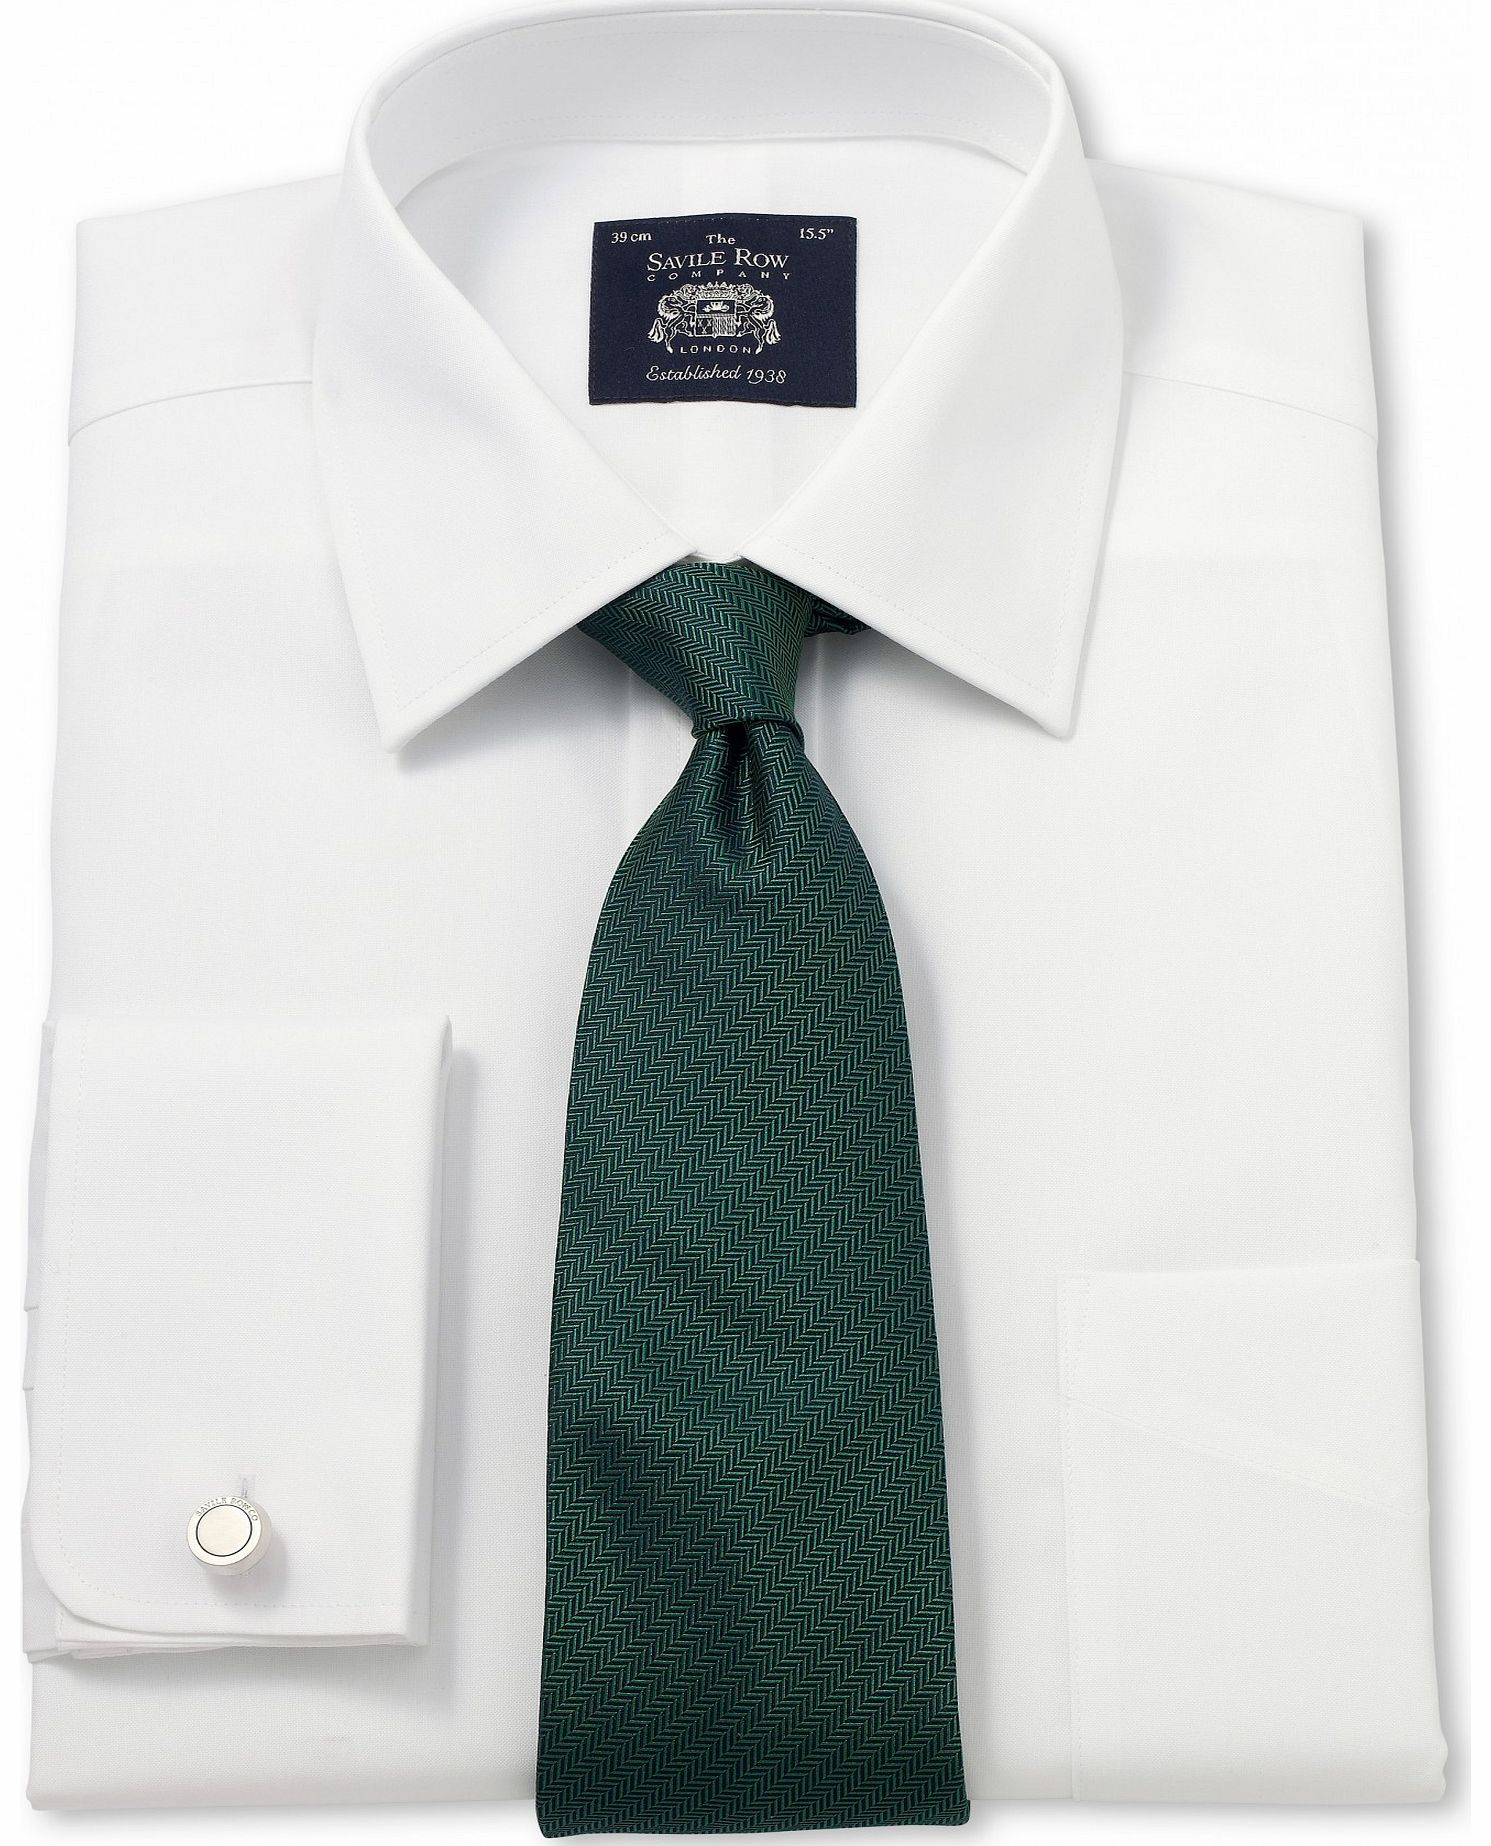 Savile Row Company White Non-Iron Classic Fit Shirt 17`` Standard & product image